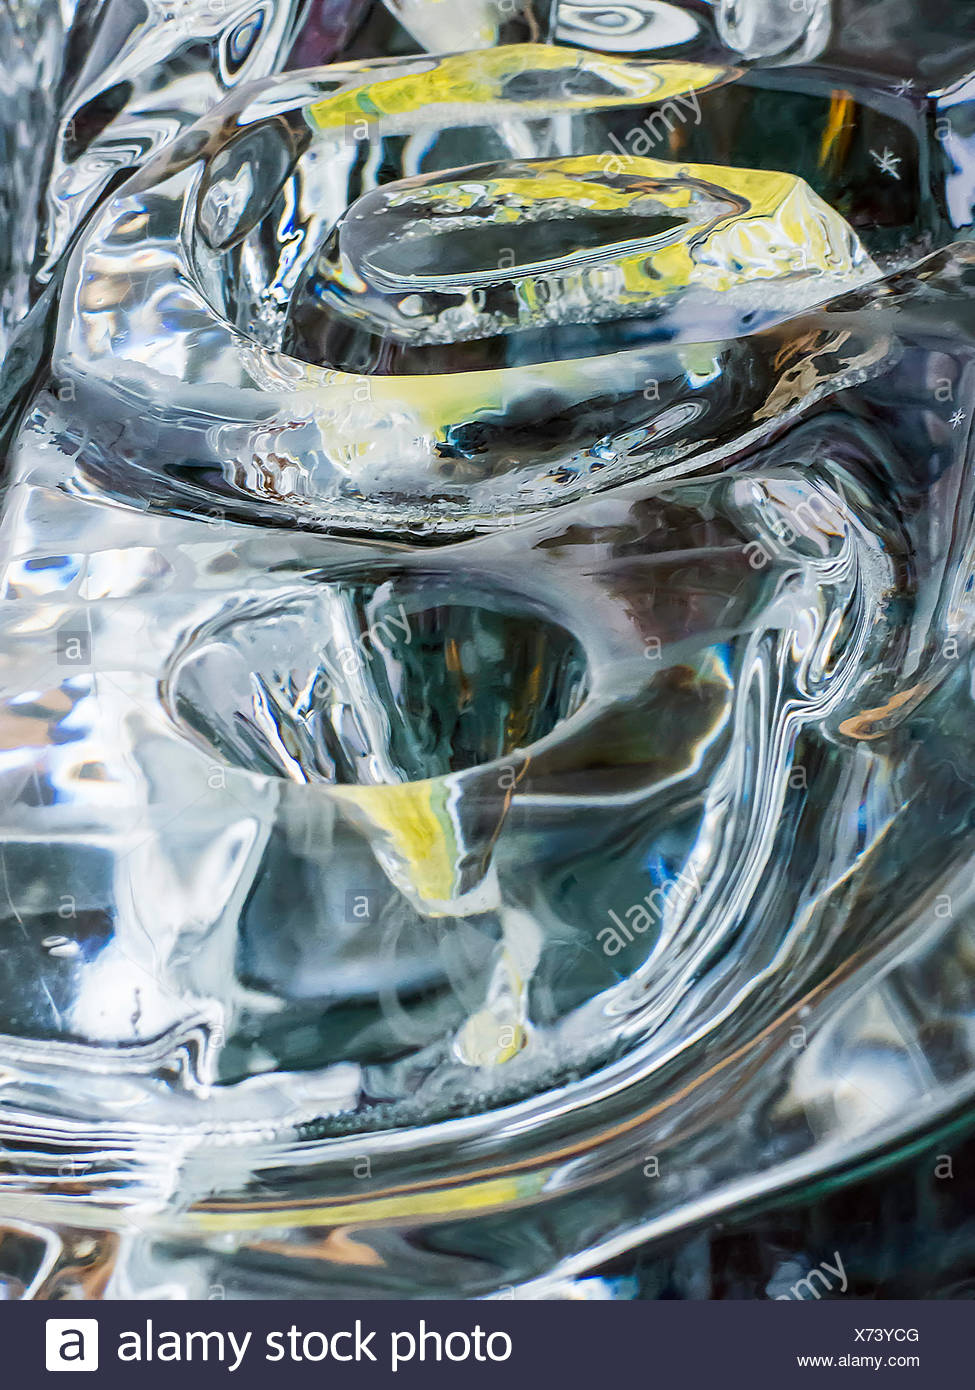 USA, Illinois, DuPage County, Downers Grove, Green and blue light reflecting in ice - Stock Image